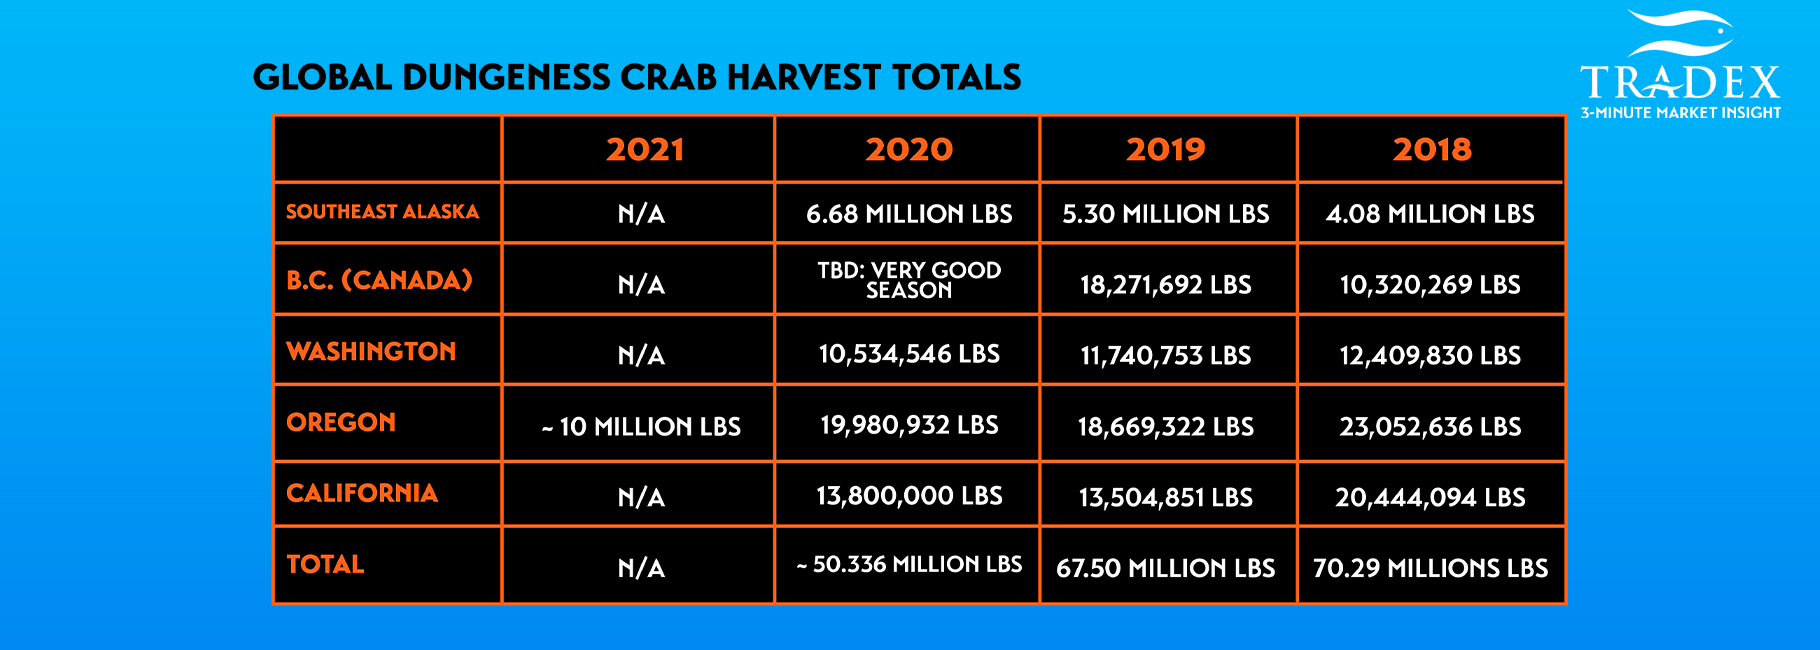 Global Dungeness Crab Harvest Totals